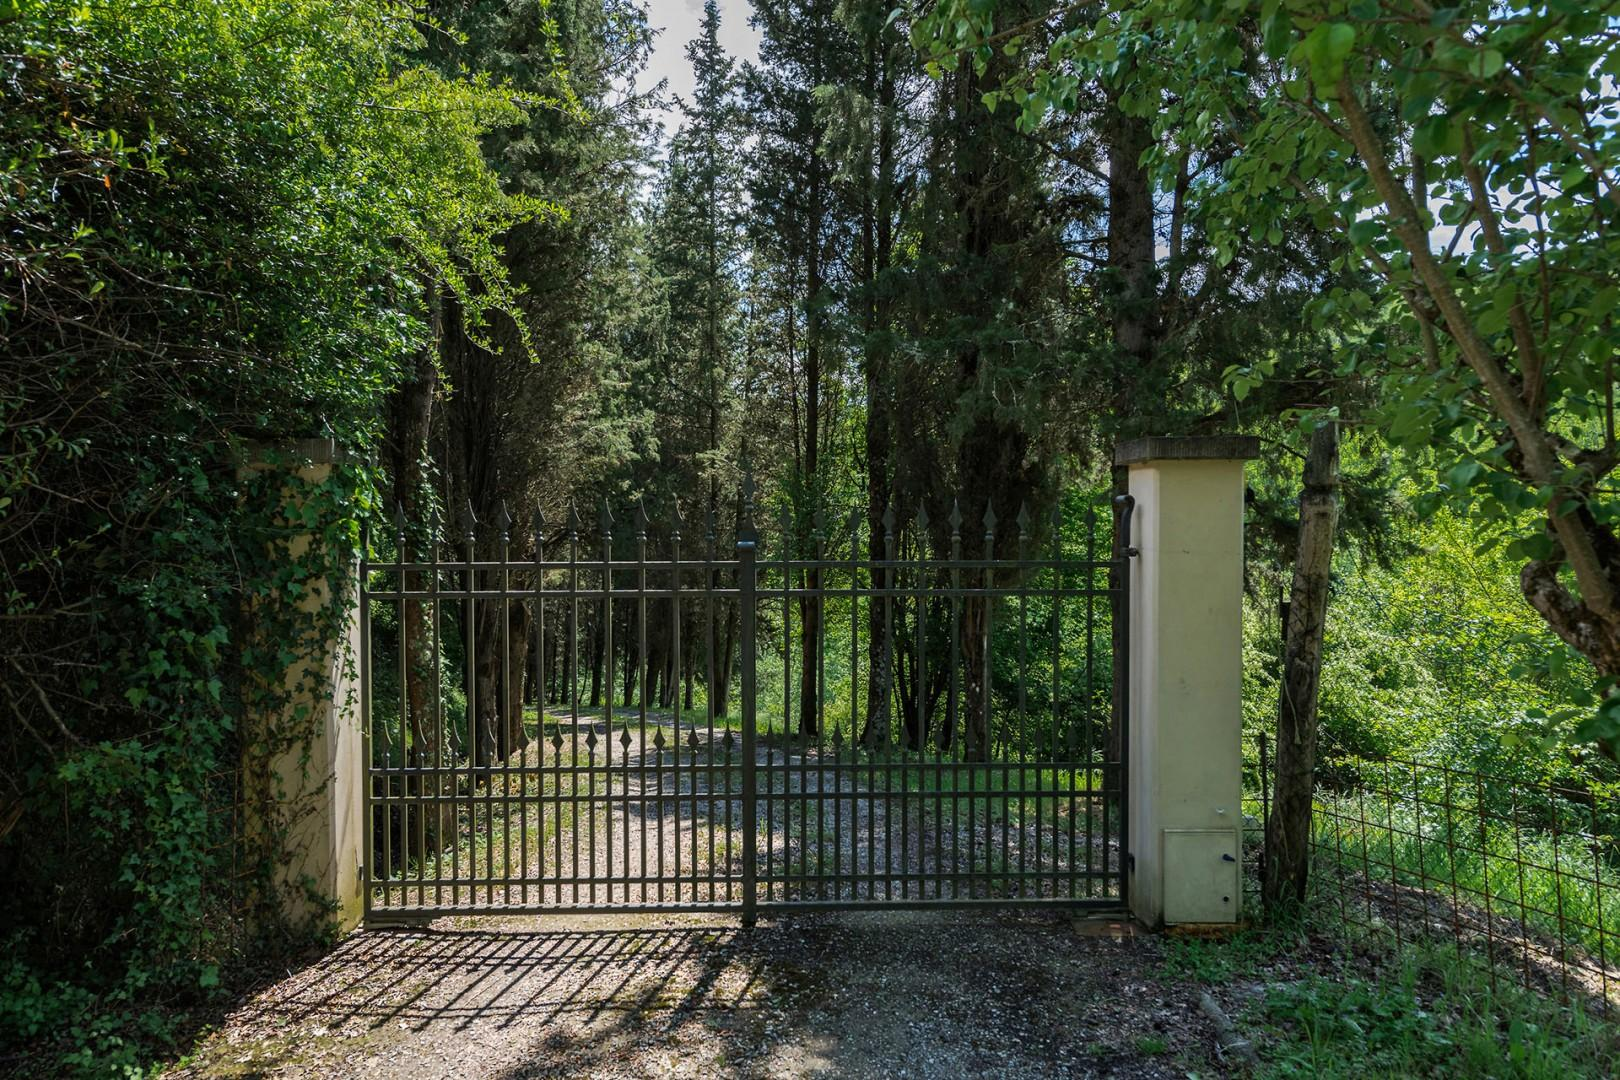 Electric entry gate